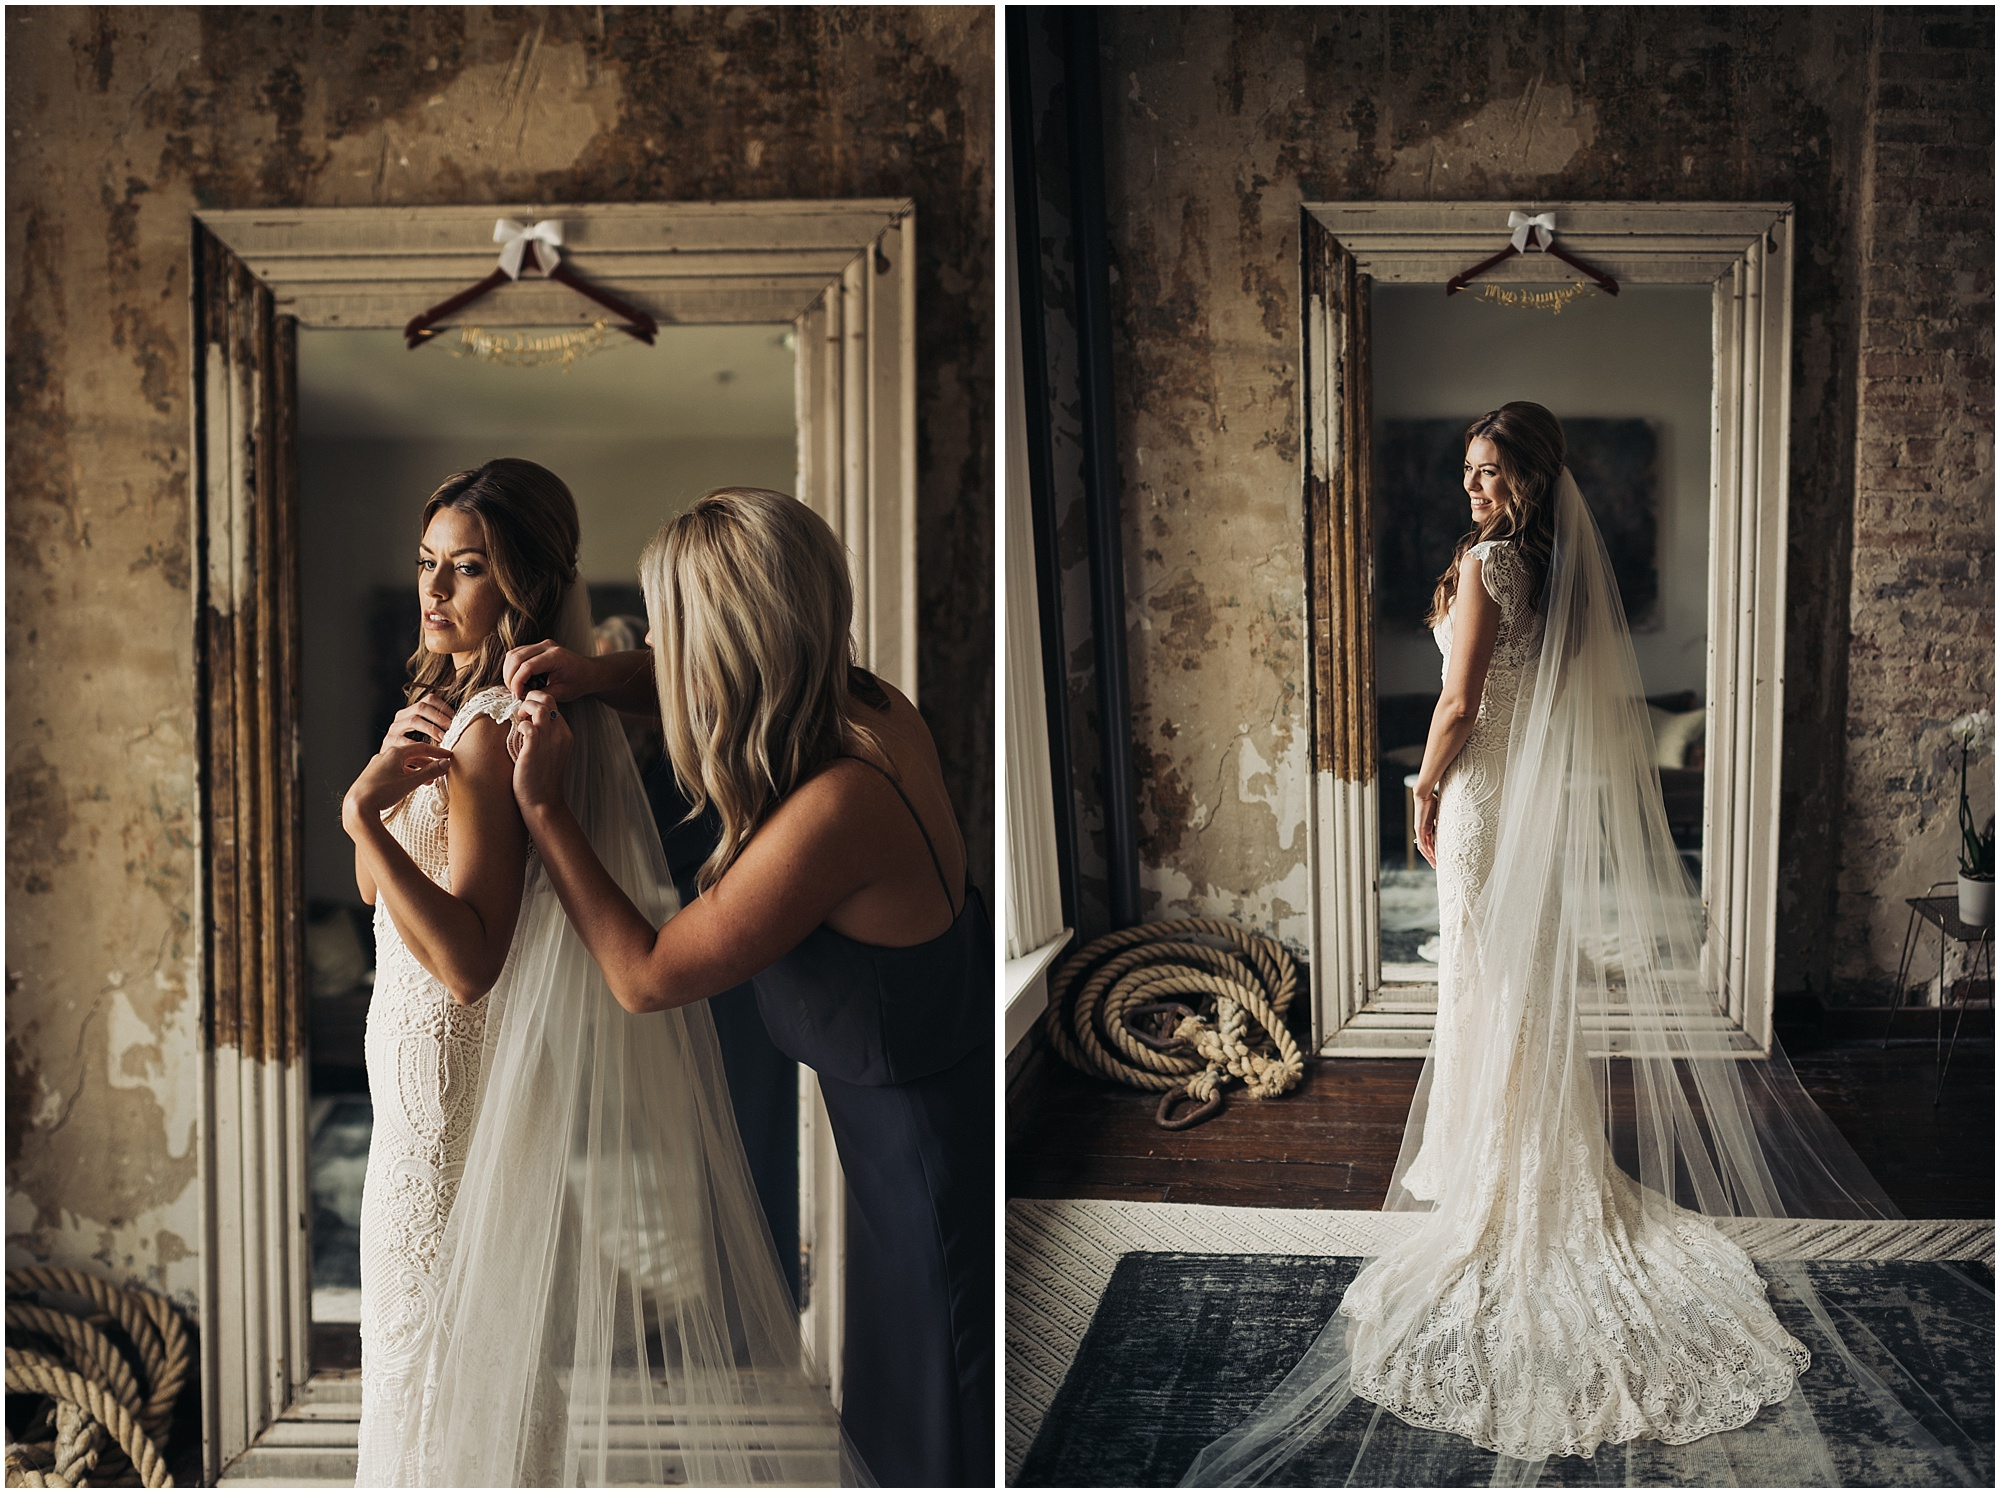 Bridal portraits at The Cordelle in big mirror